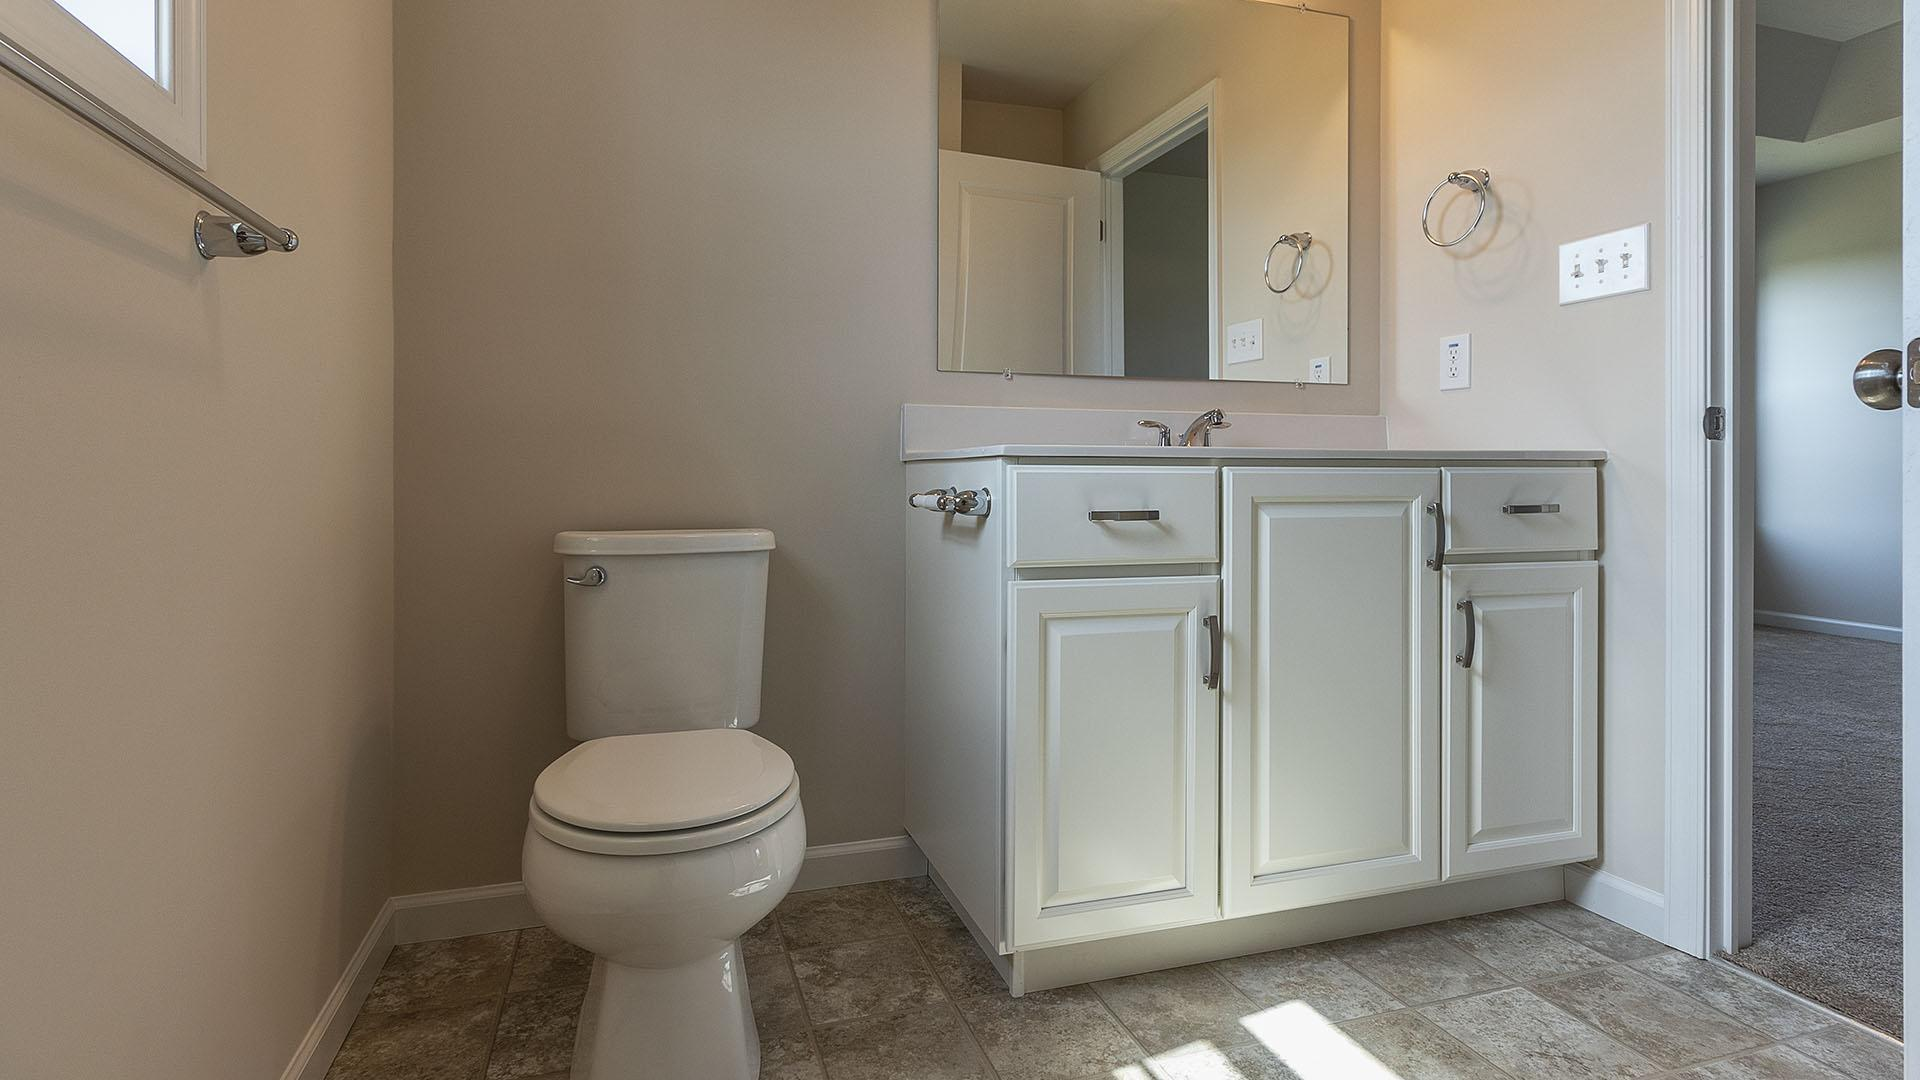 Bathroom featured in the Hampshire By S & A Homes in Harrisburg, PA